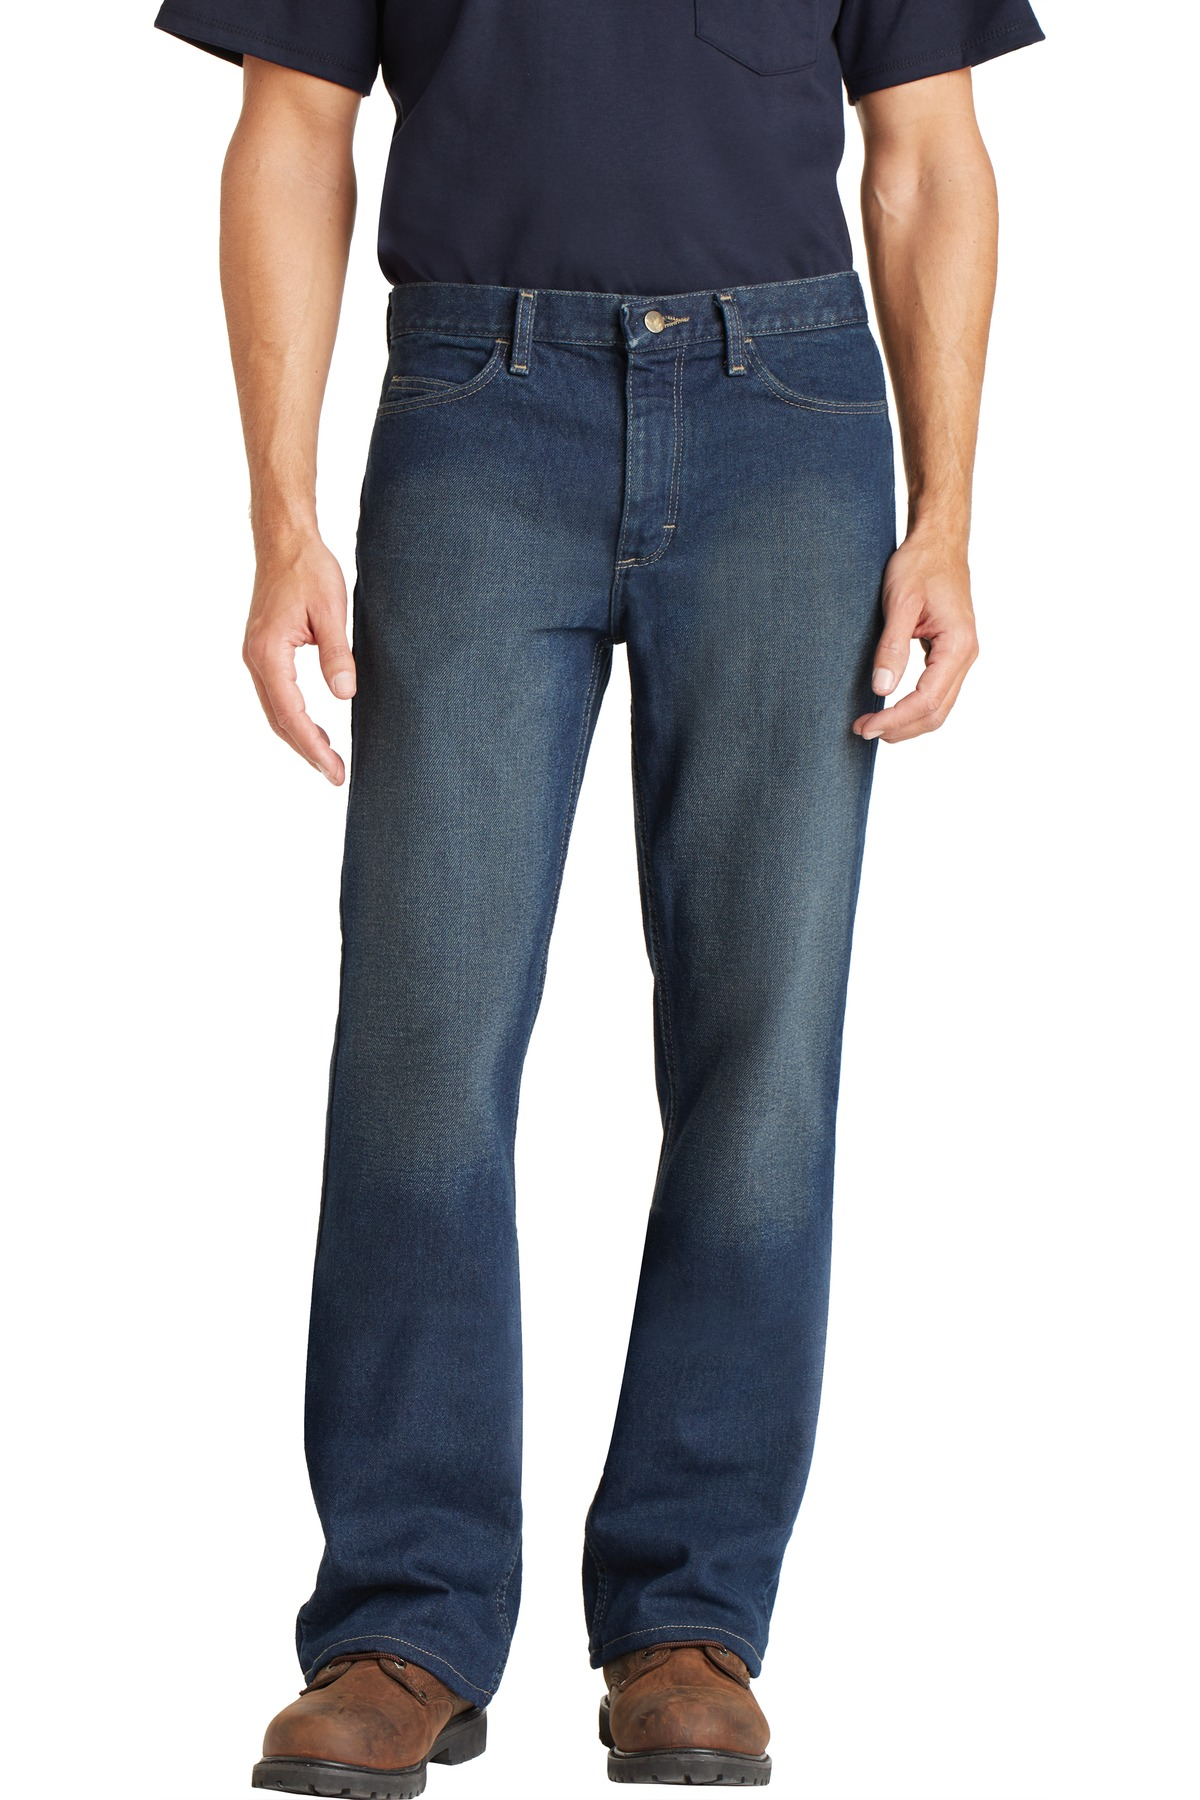 Bulwark  EXCEL FR  PEJM - Men's Straight Fit Sanded ...